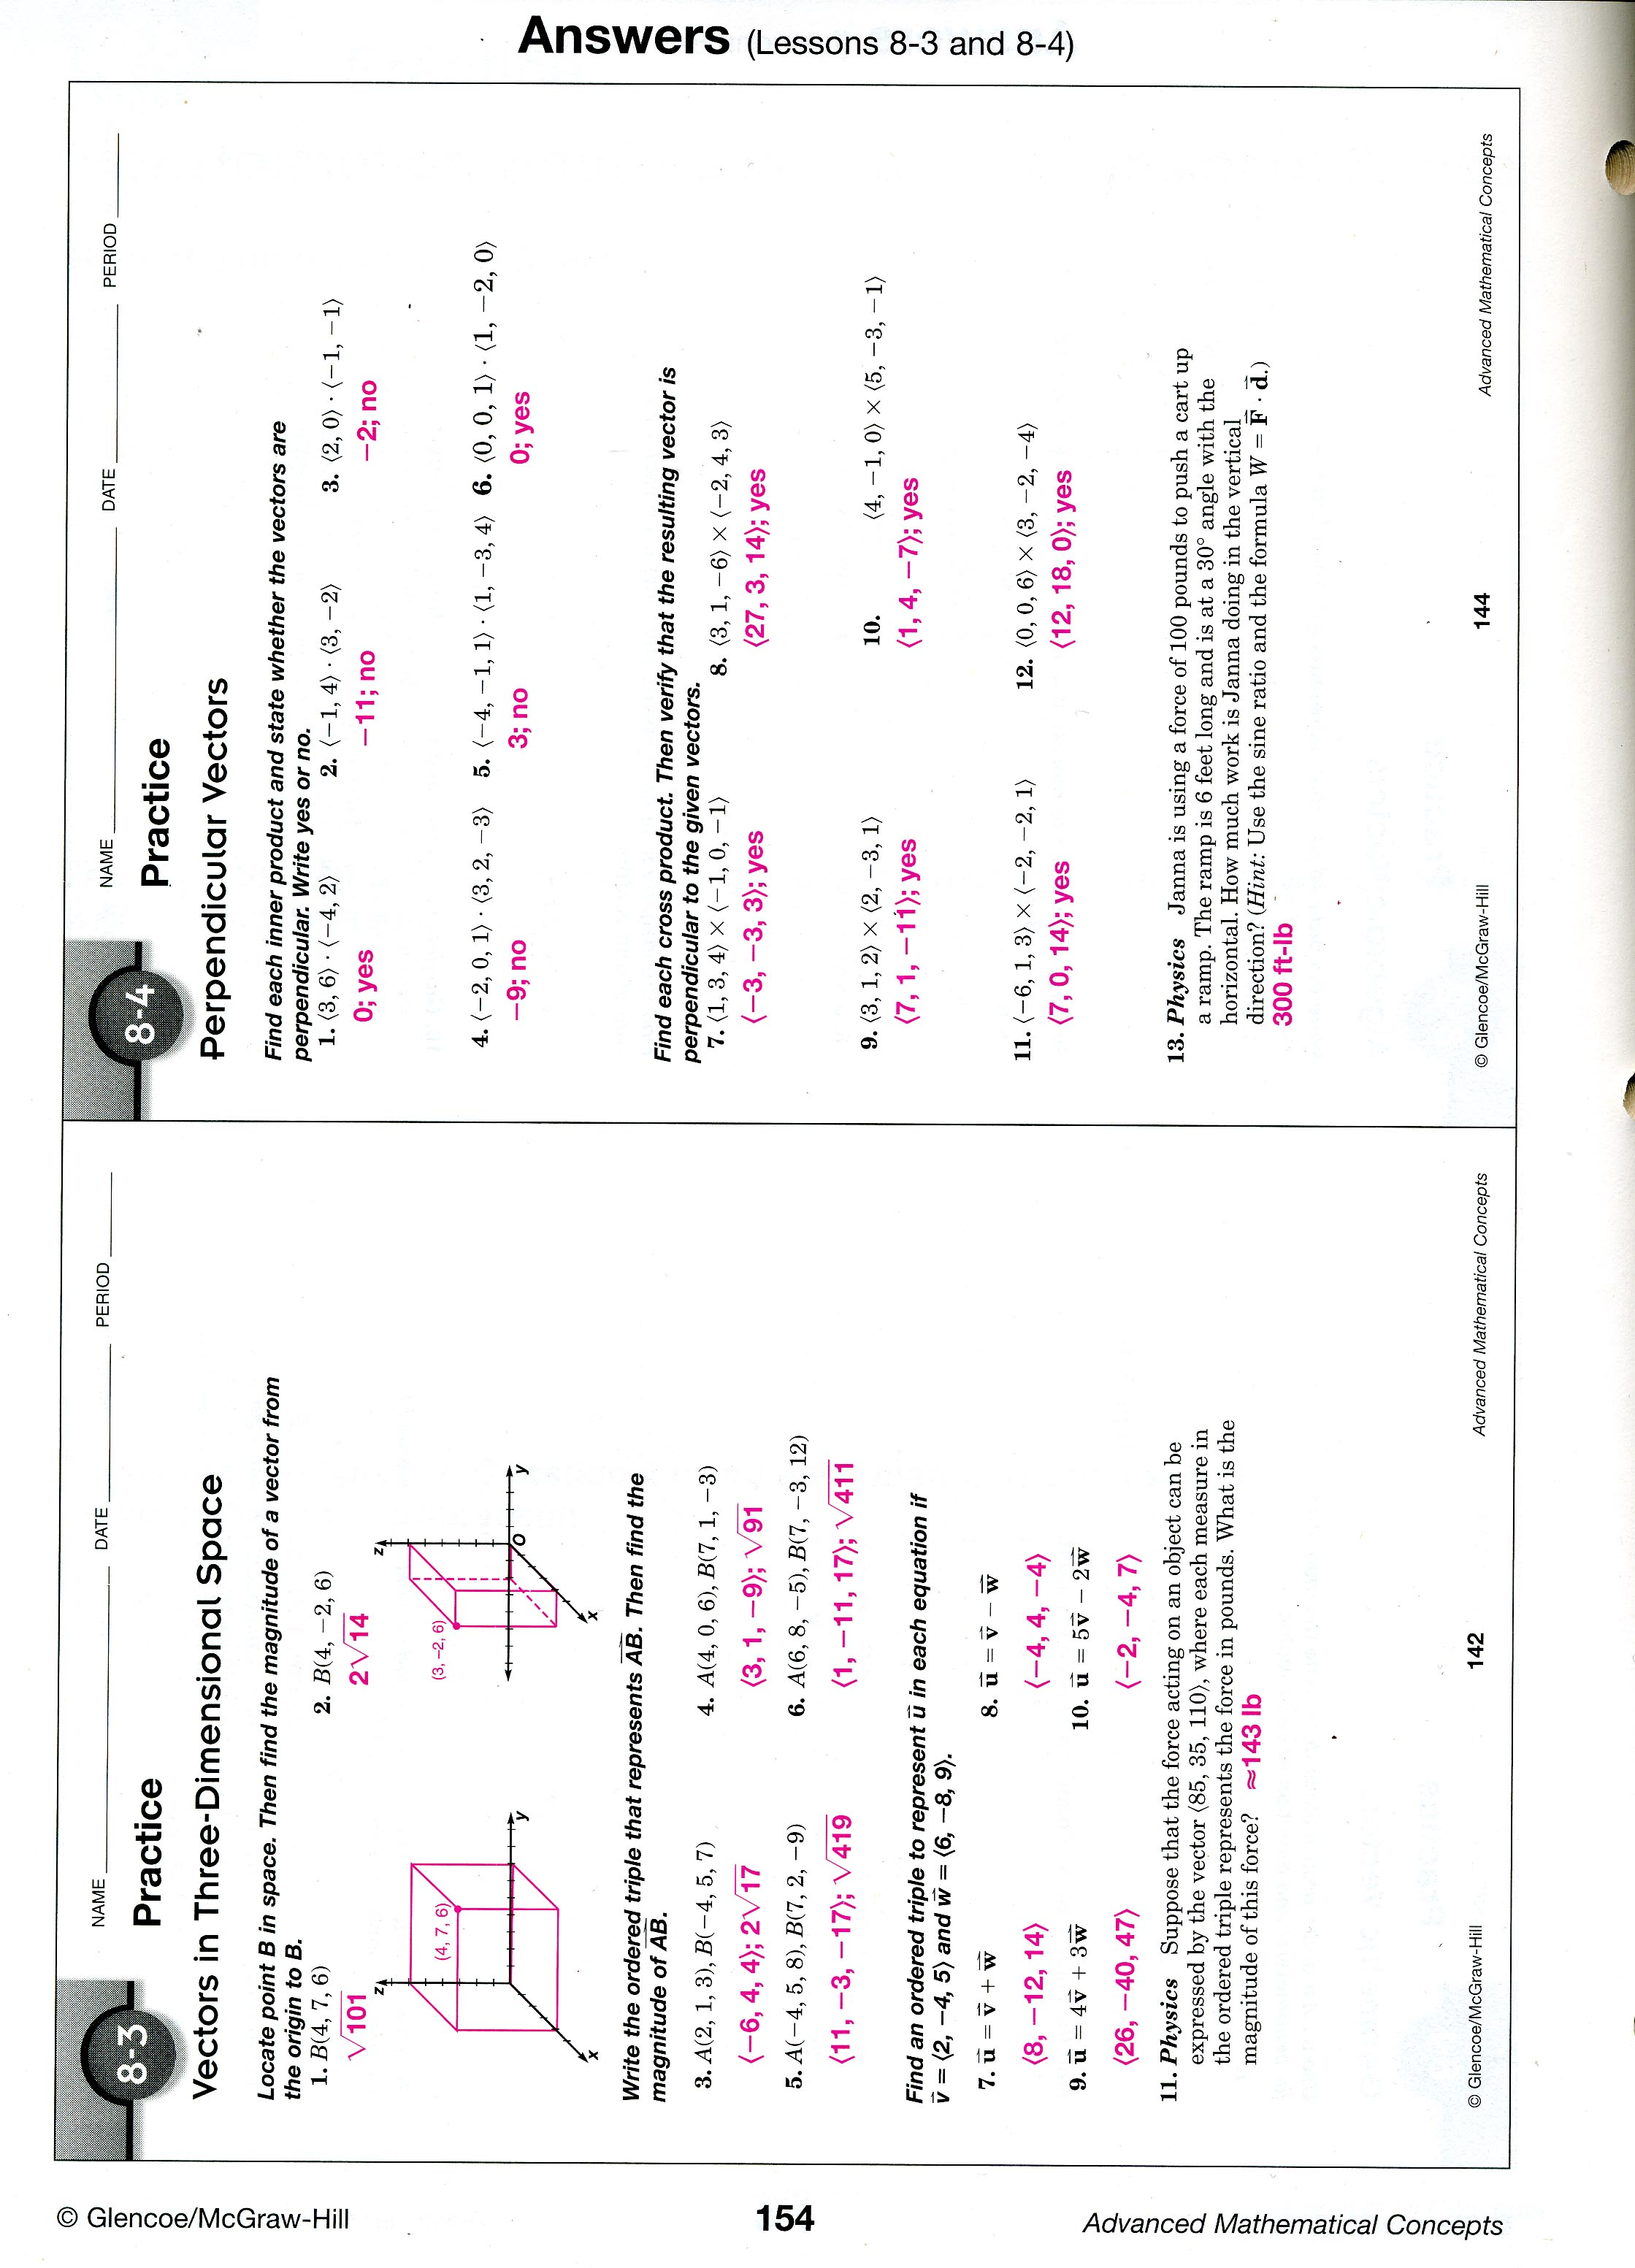 mrscabral / Ch 8 Worksheet Answers